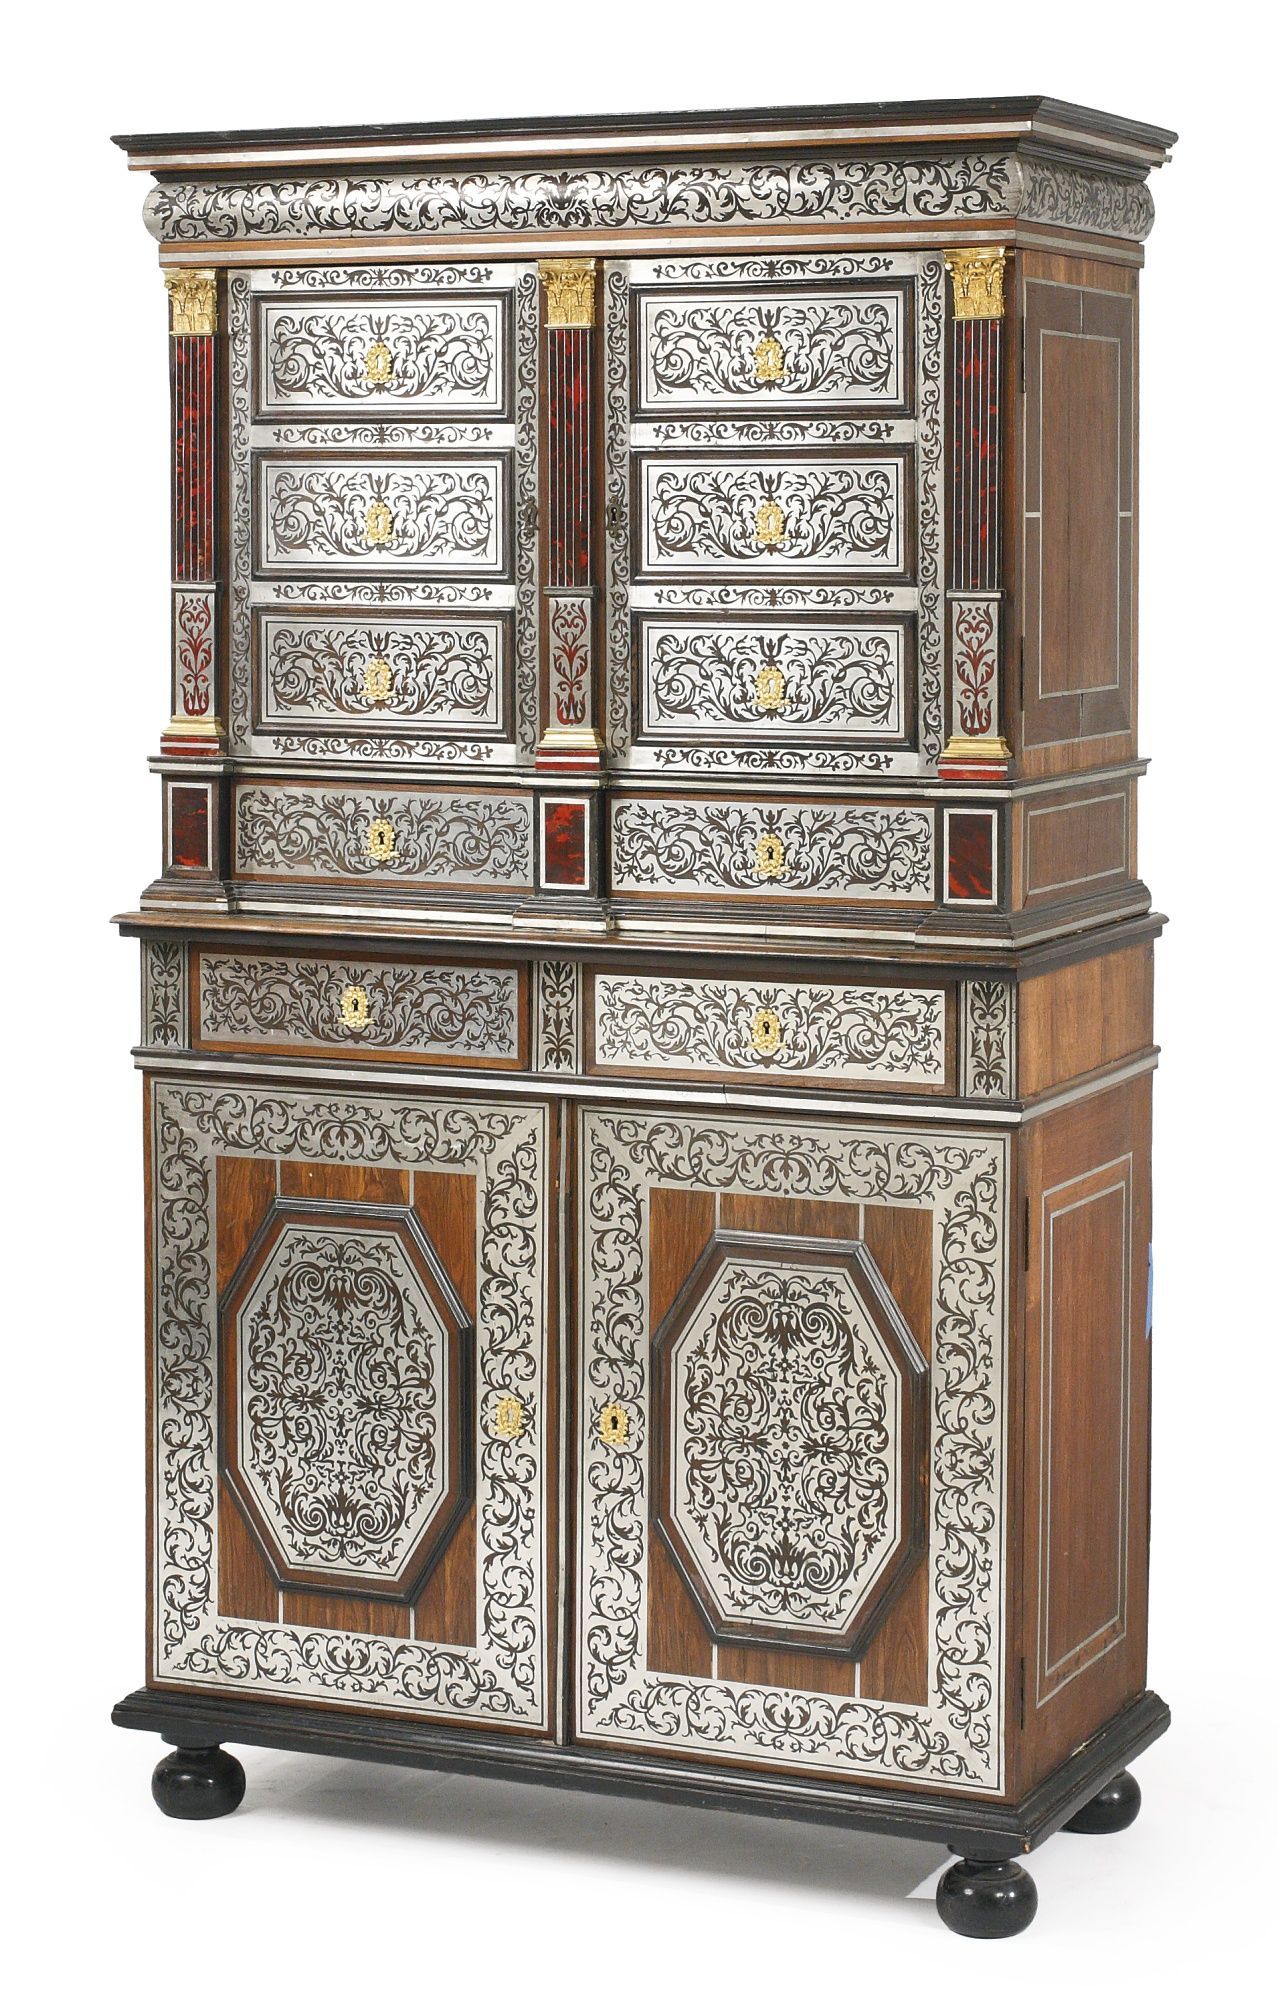 Muebles De La India A Louis Xiv Ormolu Mounted Pewter And Tortoiseshell Inlaid